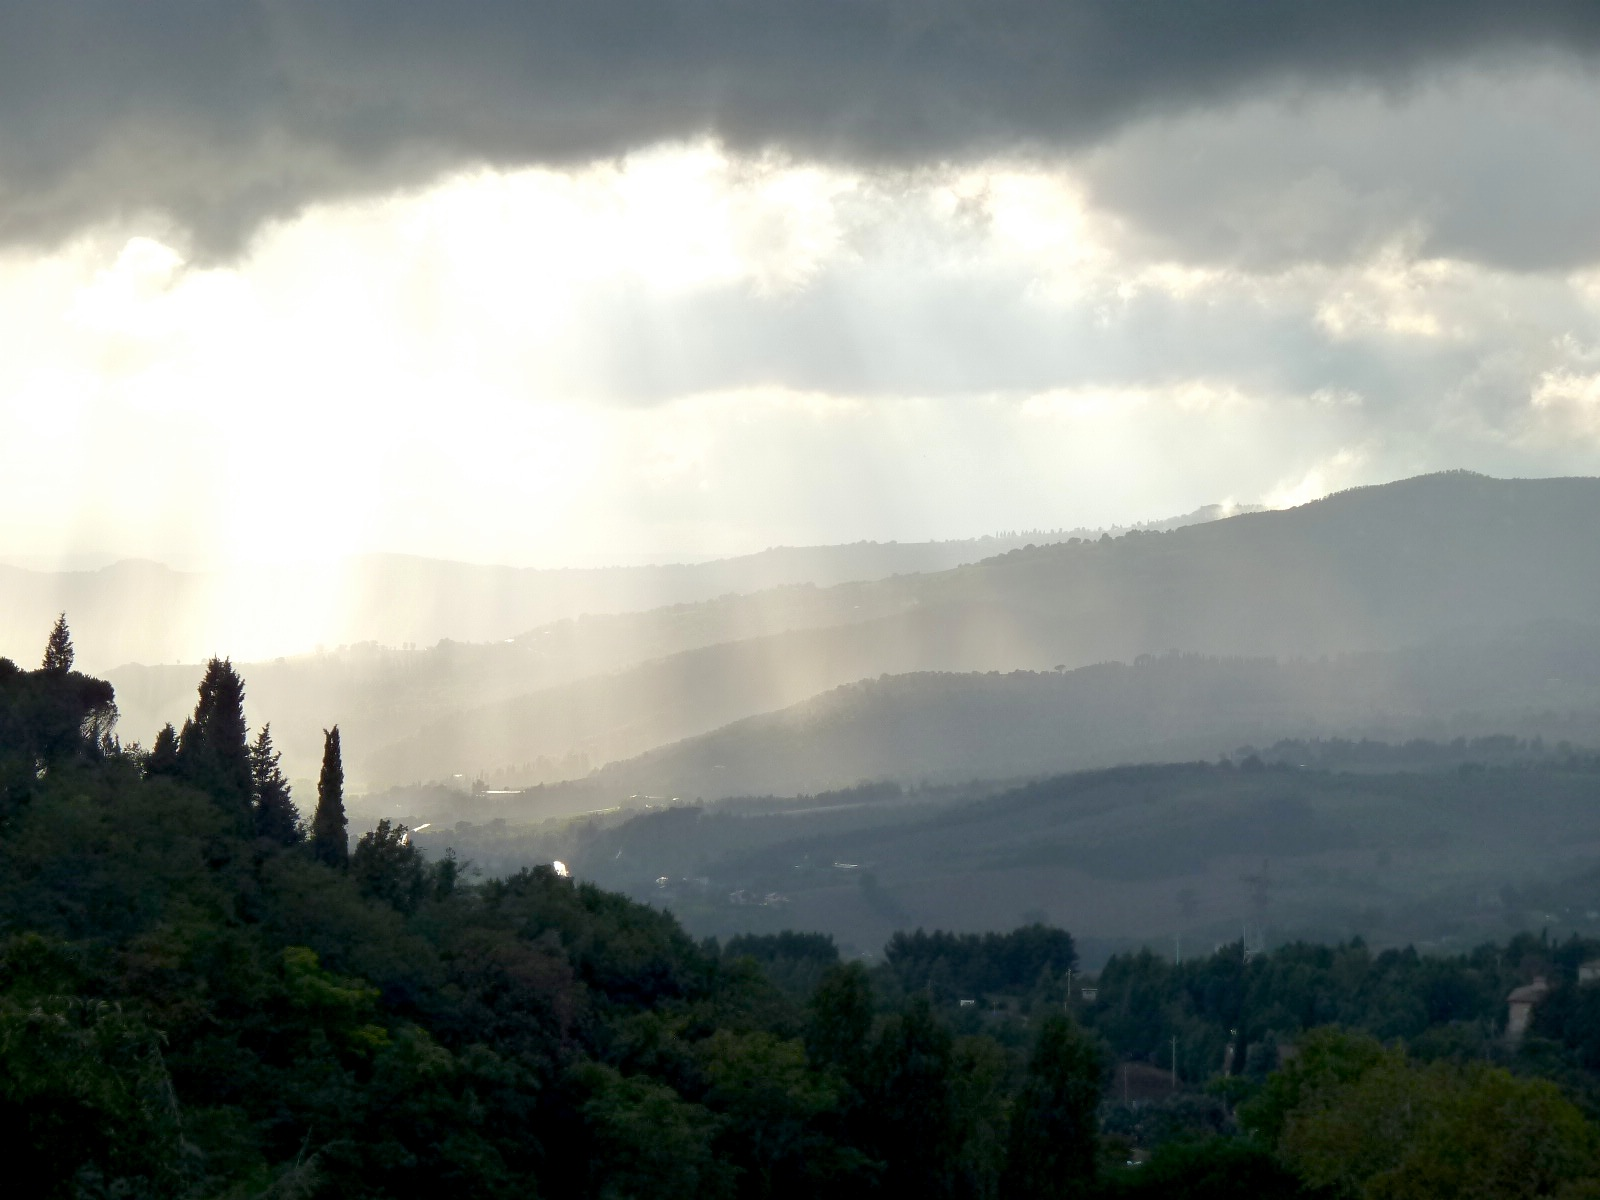 The-light-shines-on-Umbria.jpg